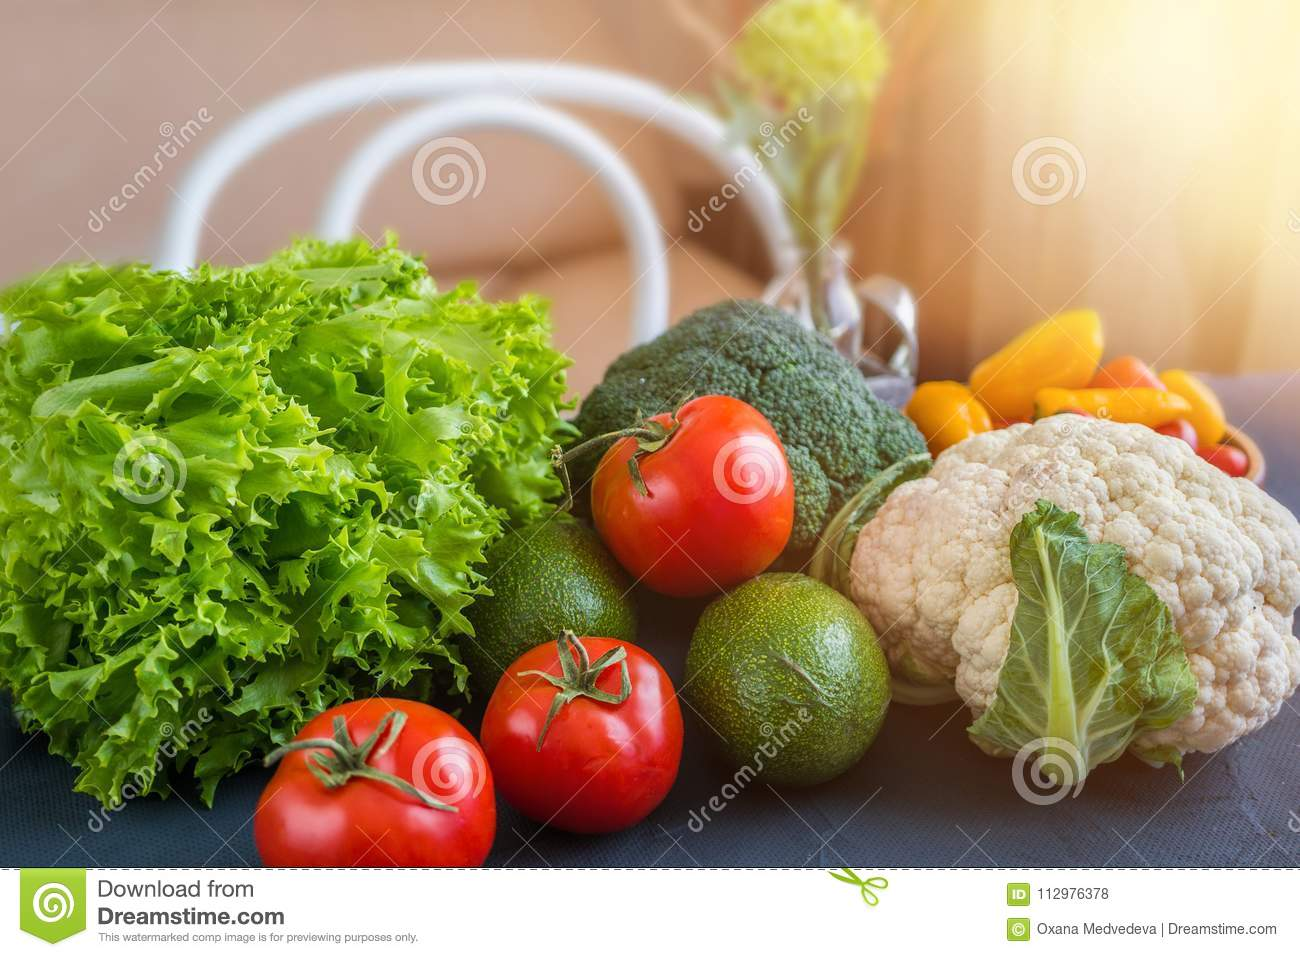 Mixed vegetables of cauliflower and broccoli, garlic, green onions, tomatoes and green peas on a wooden table in the kitchen to pr